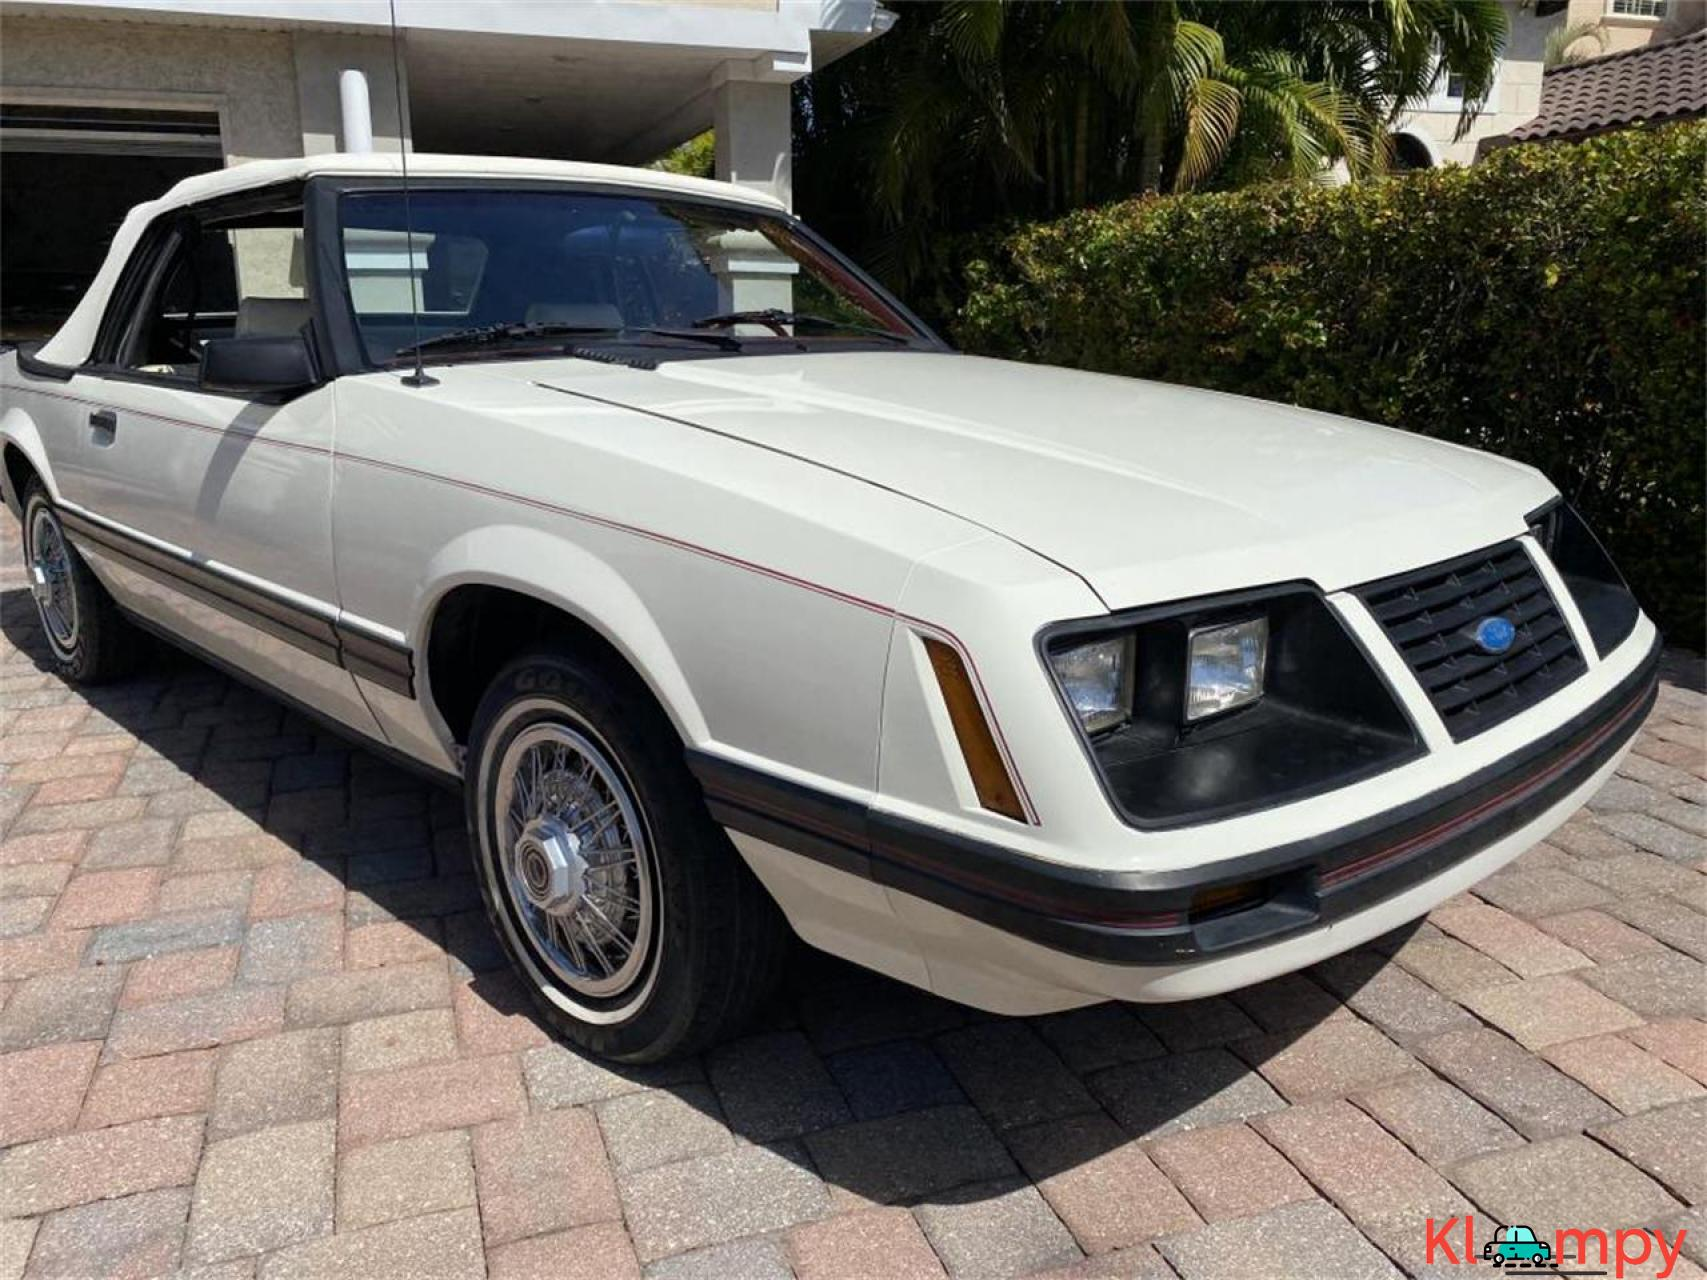 1983 Ford Mustang 3.8 LITRE V6 AUTO - 12/20